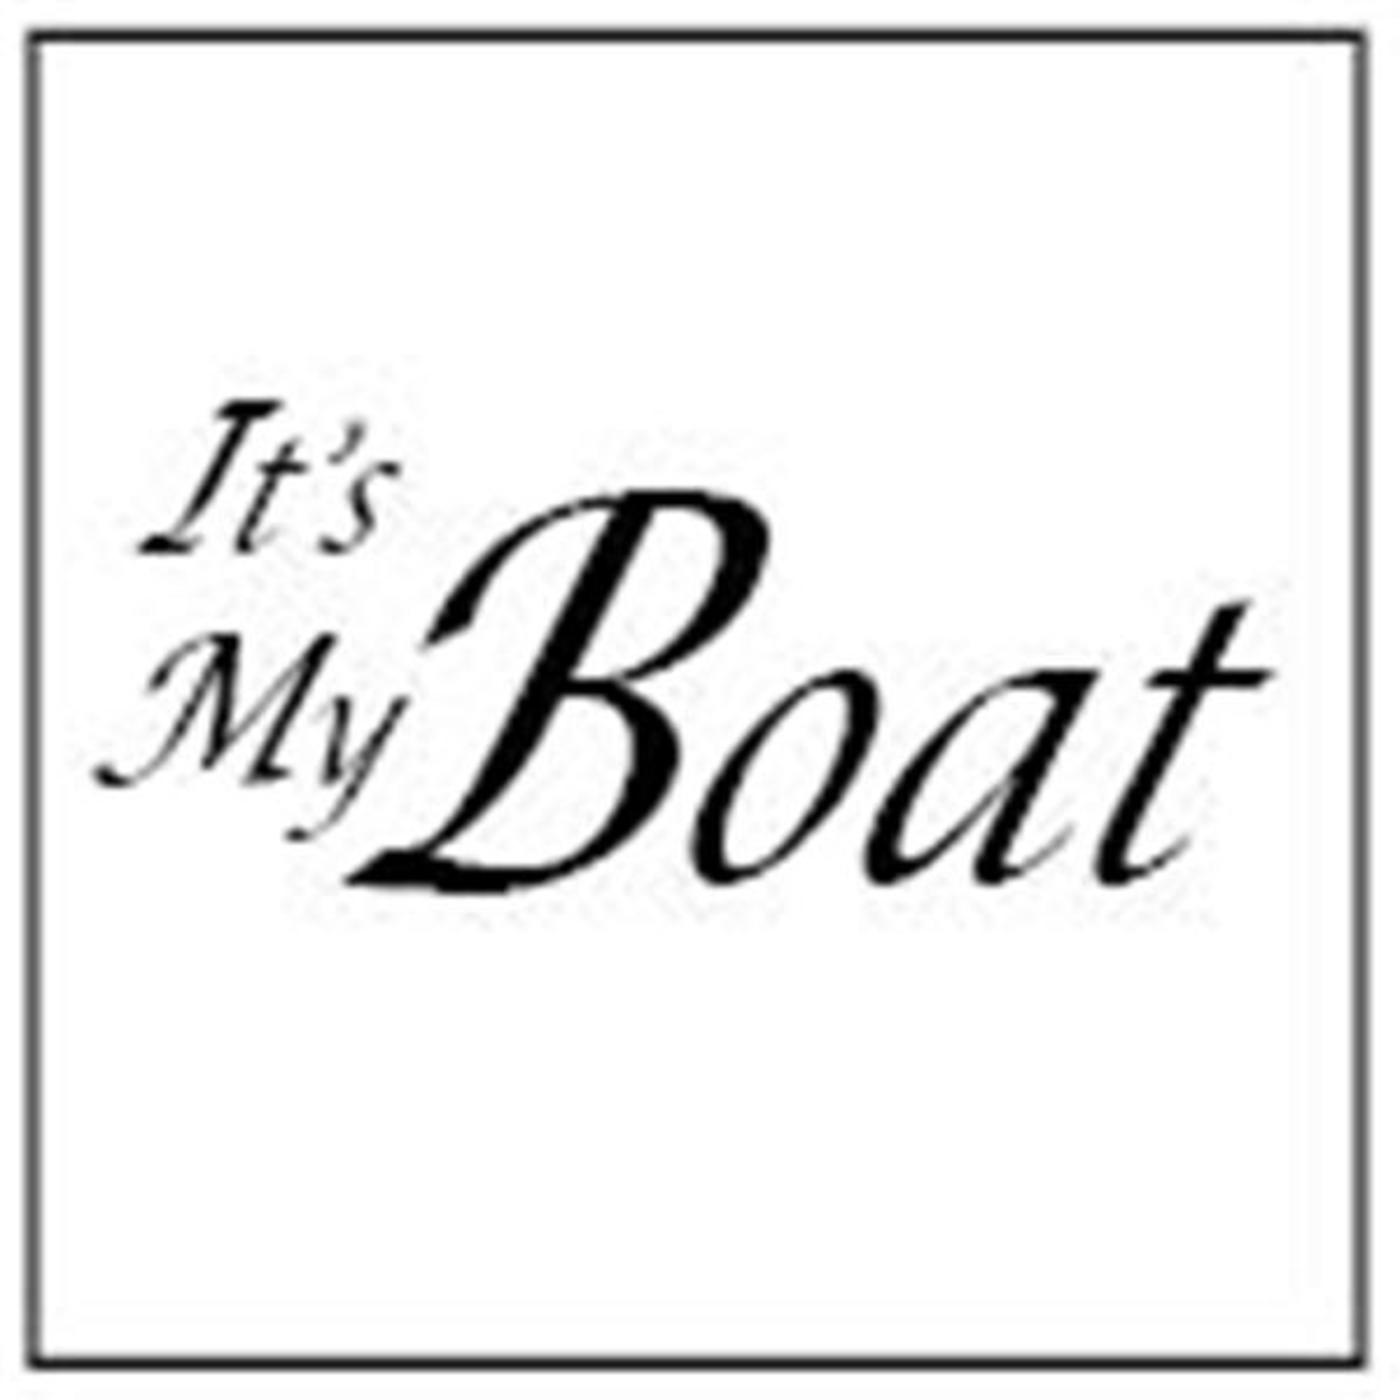 It's My Boat!